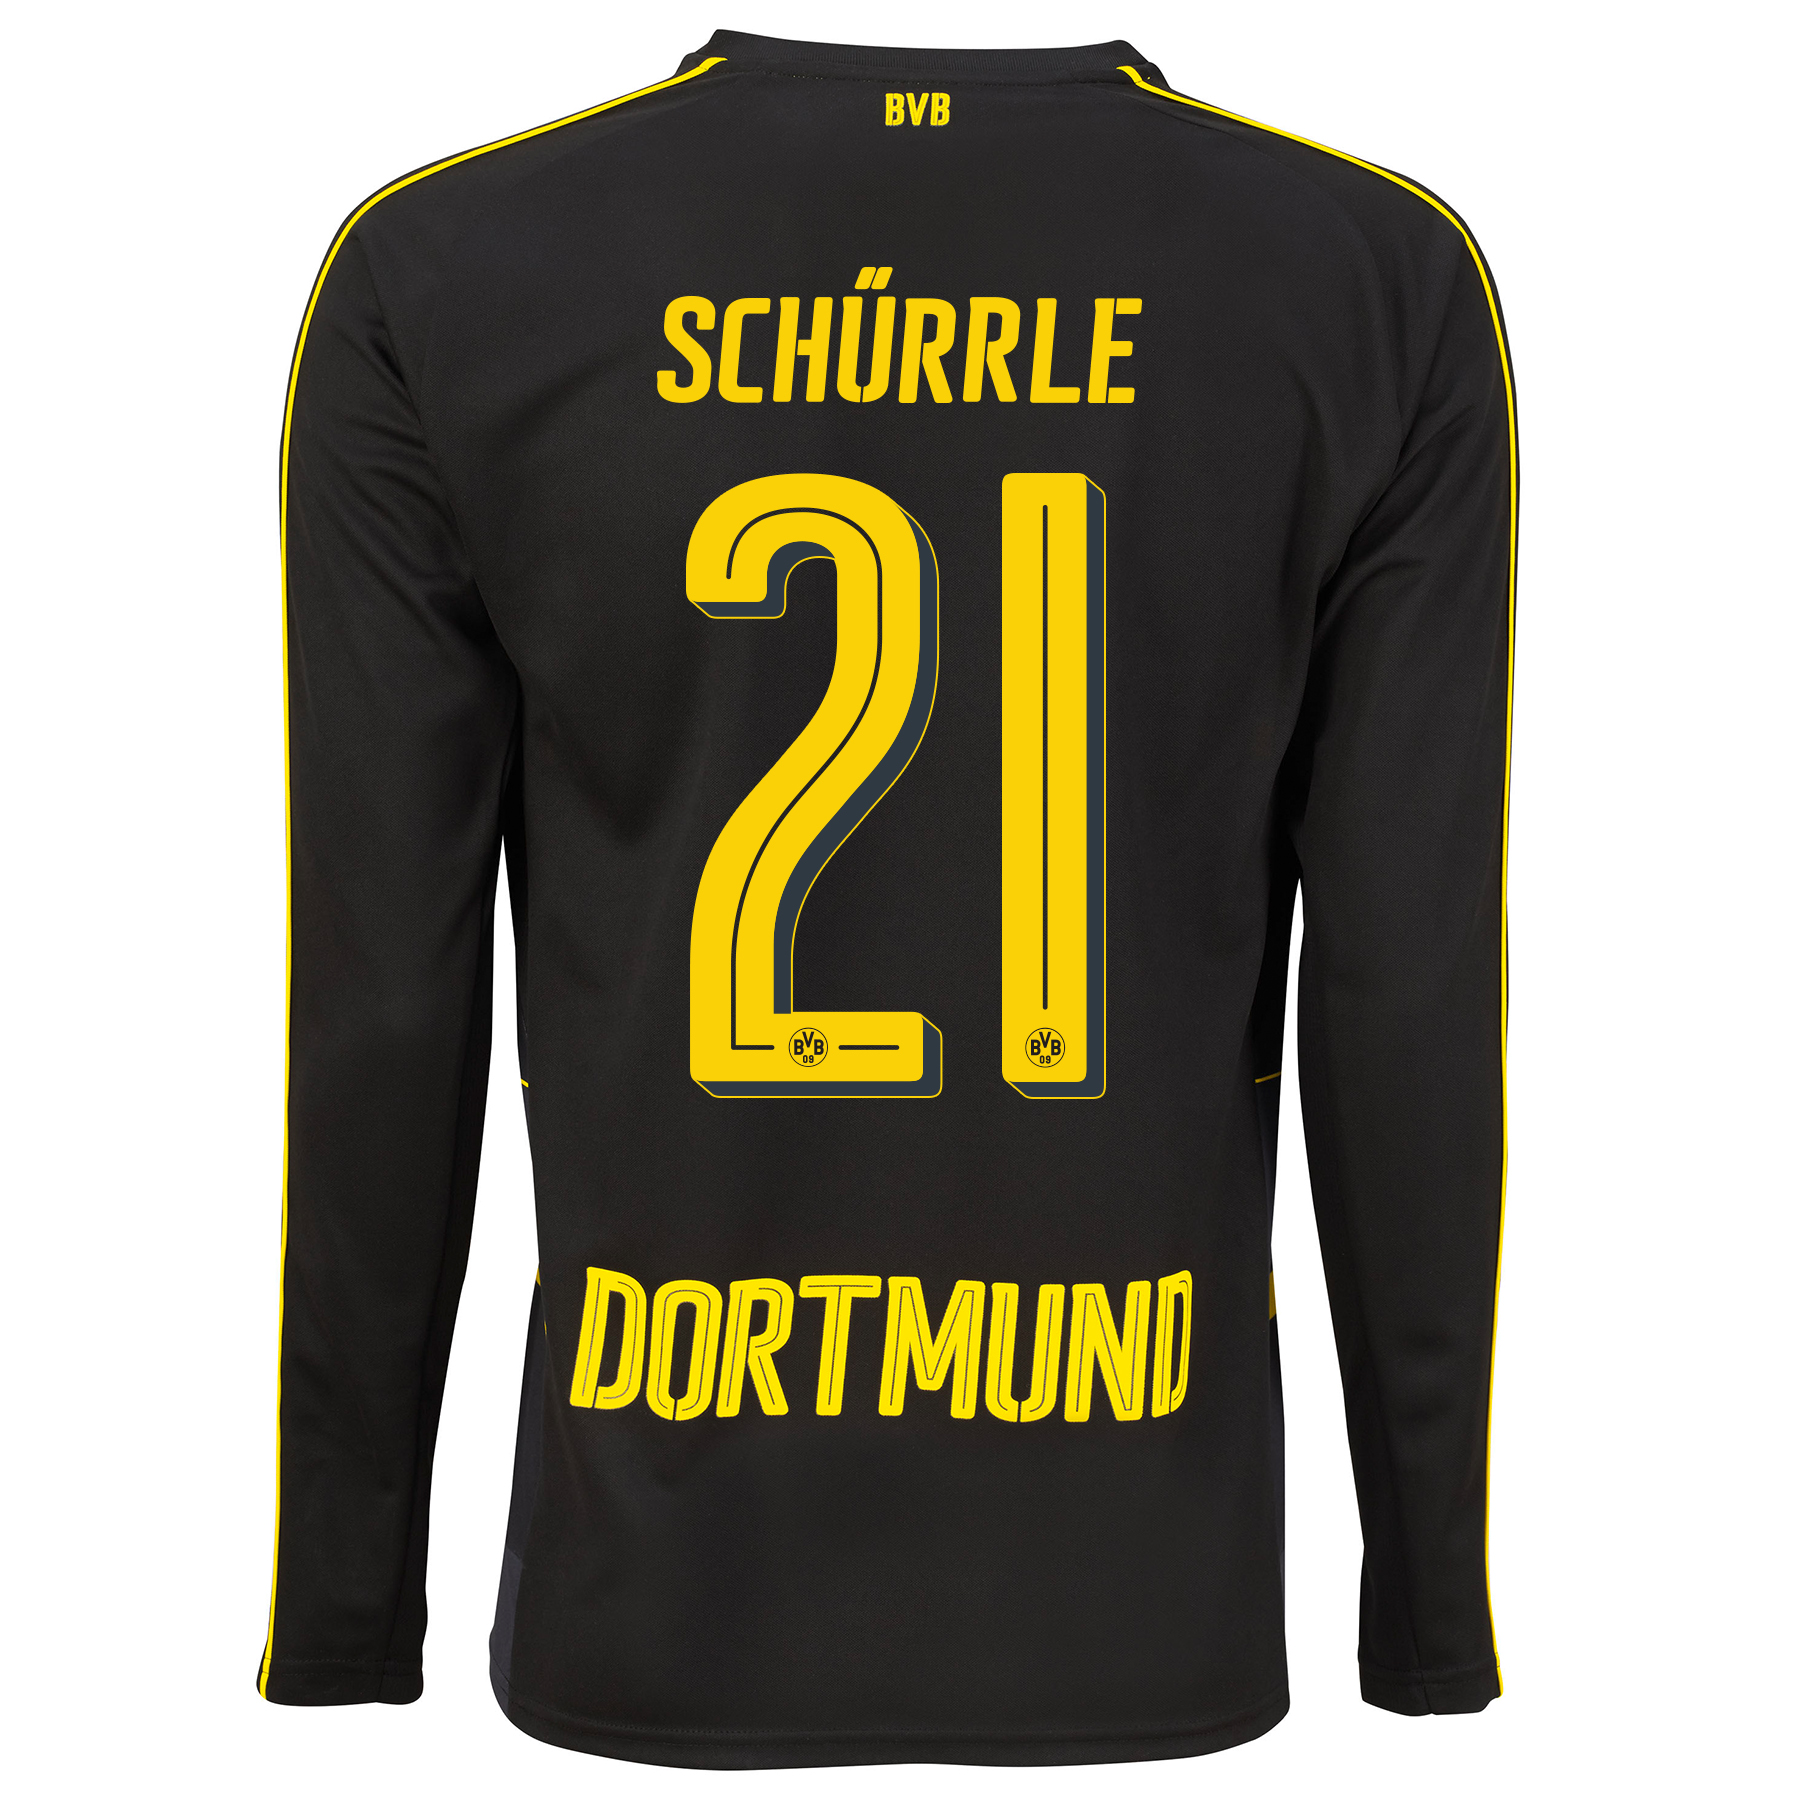 Image of BVB Away Shirt 2016-17 - Long Sleeve with Schürrle 21 printing, N/A